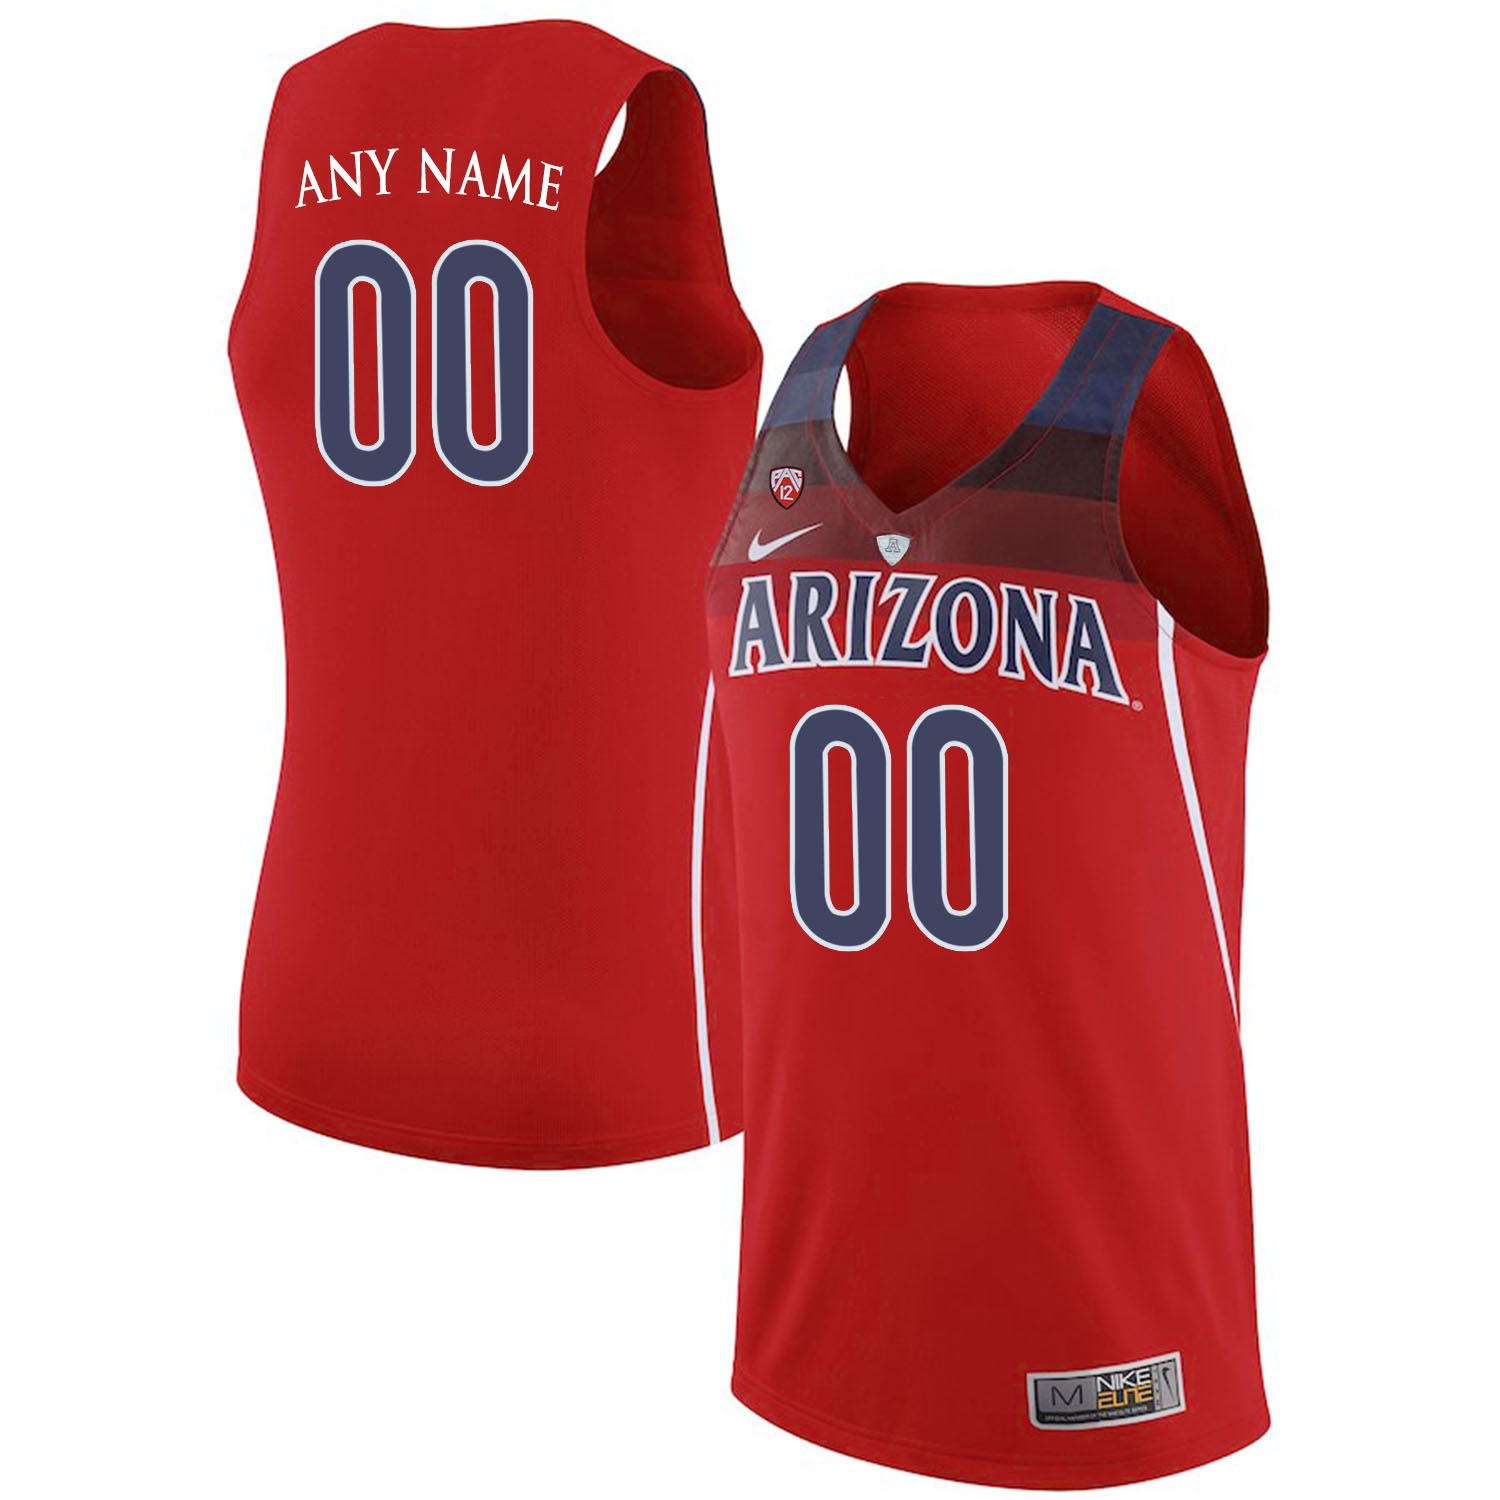 Arizona Wildcats Red Men's Custom College Basketball Jersey